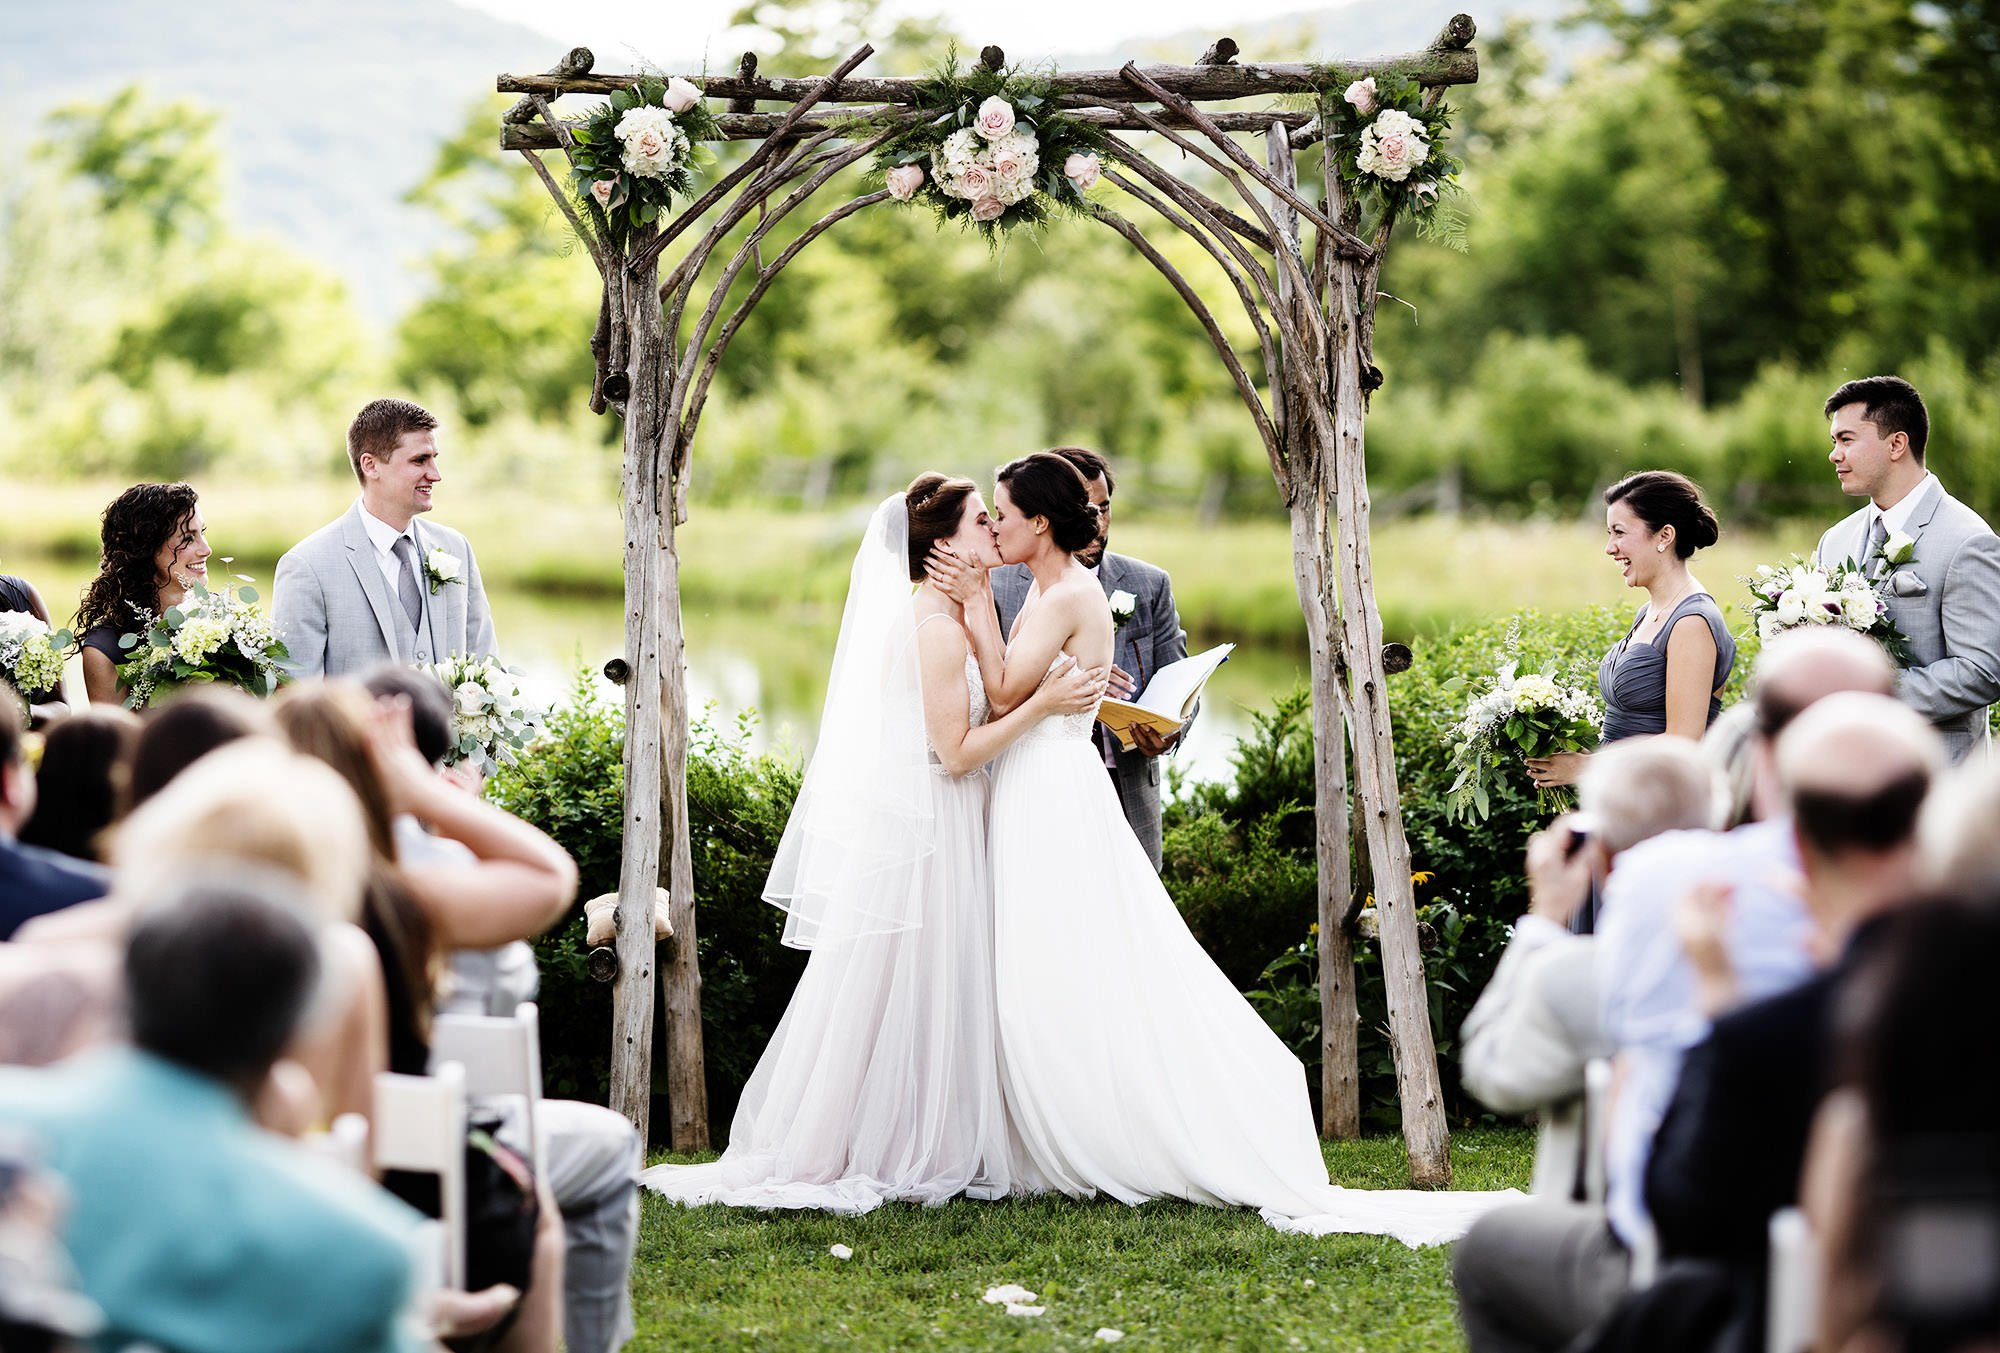 The brides share their first kiss.